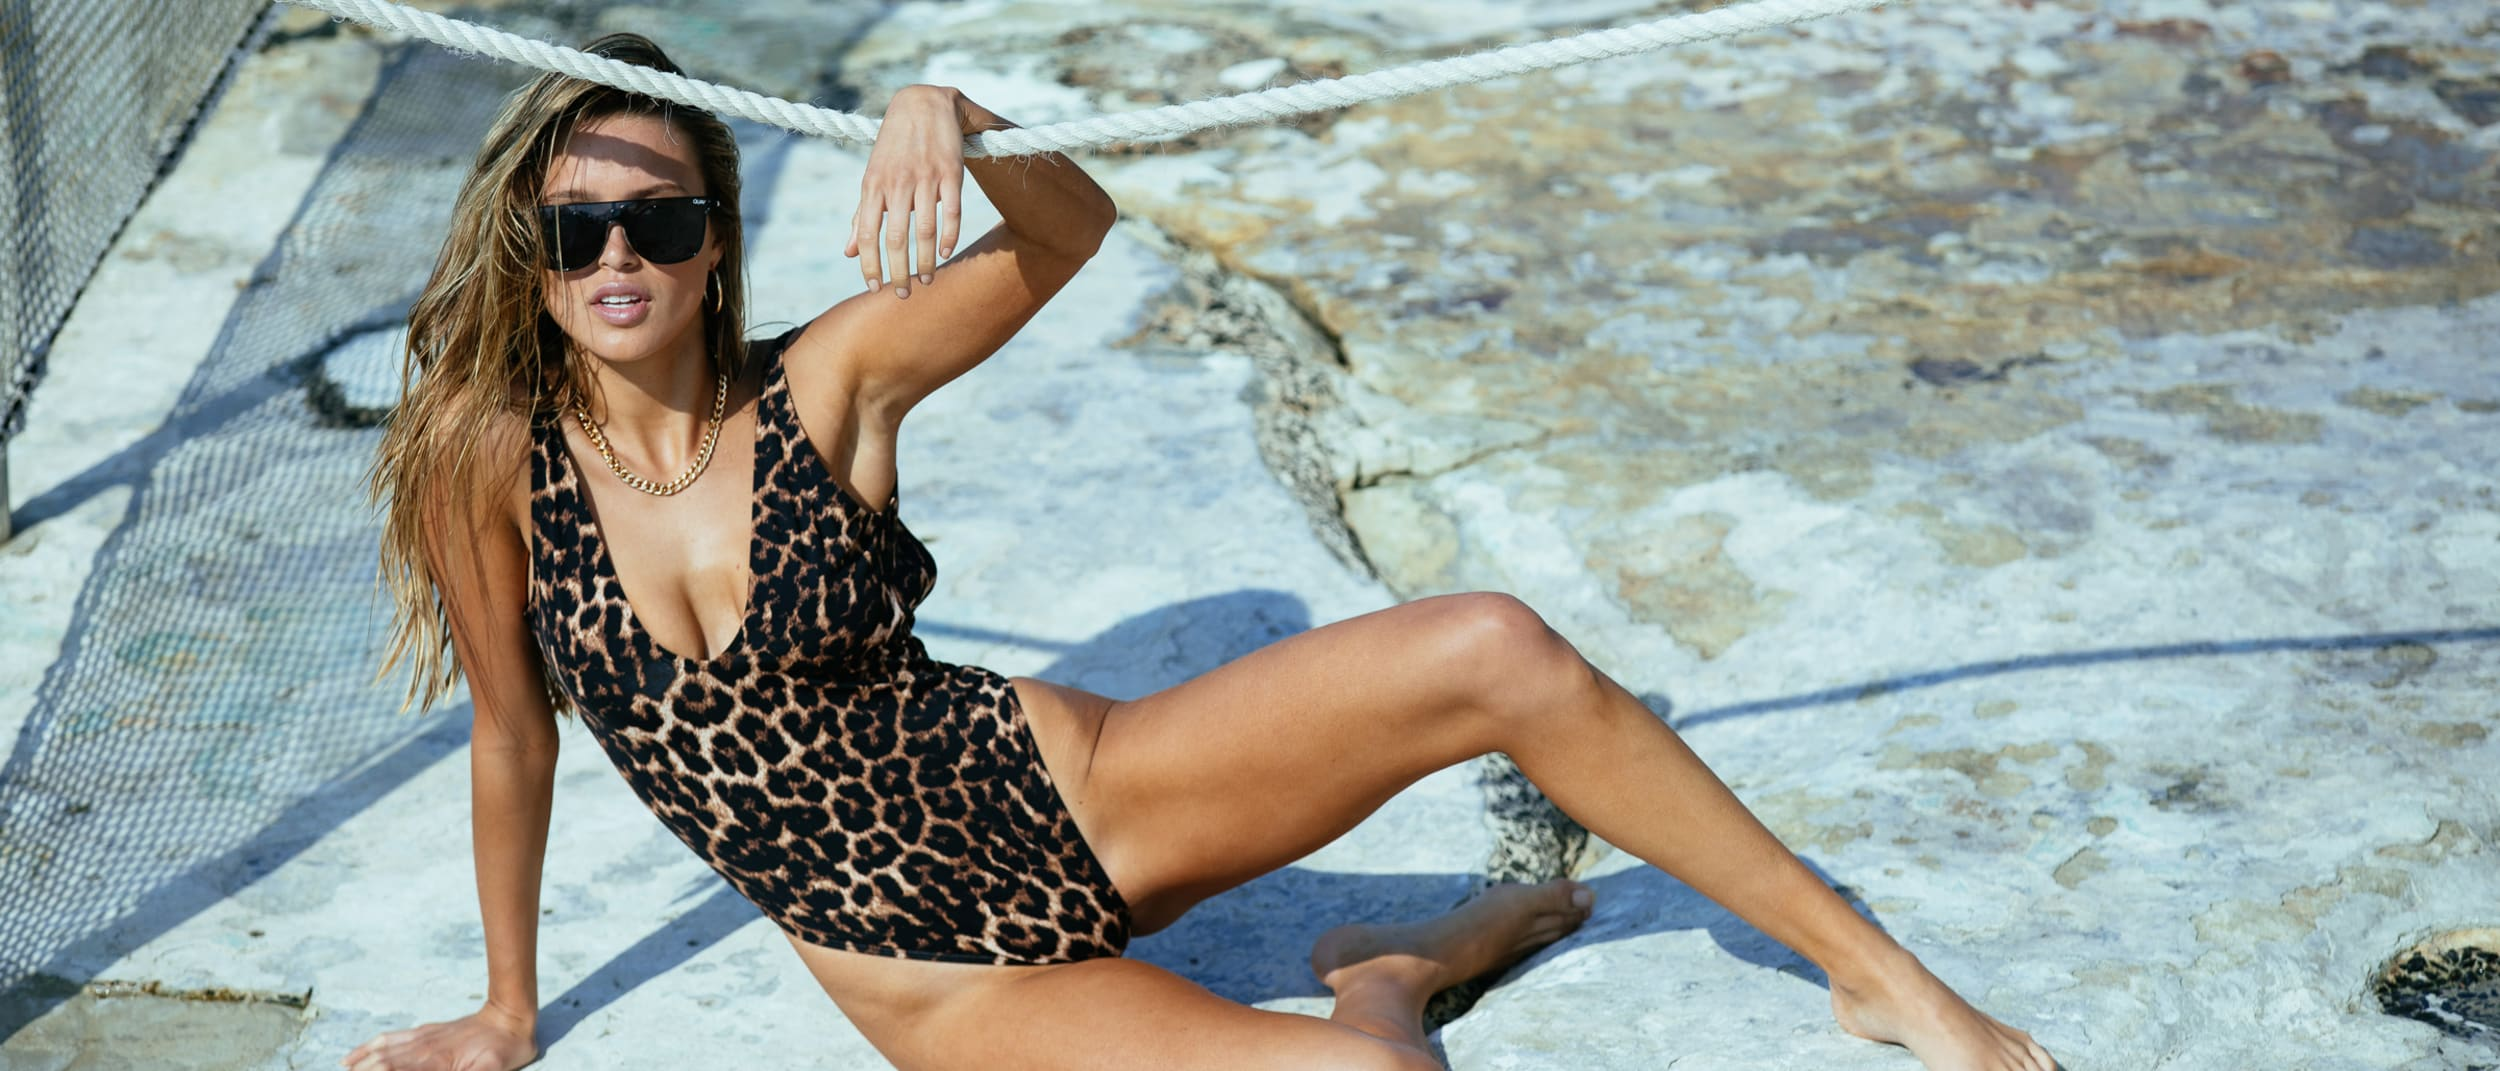 Scorching hot: the best swimwear trends for summer 2019